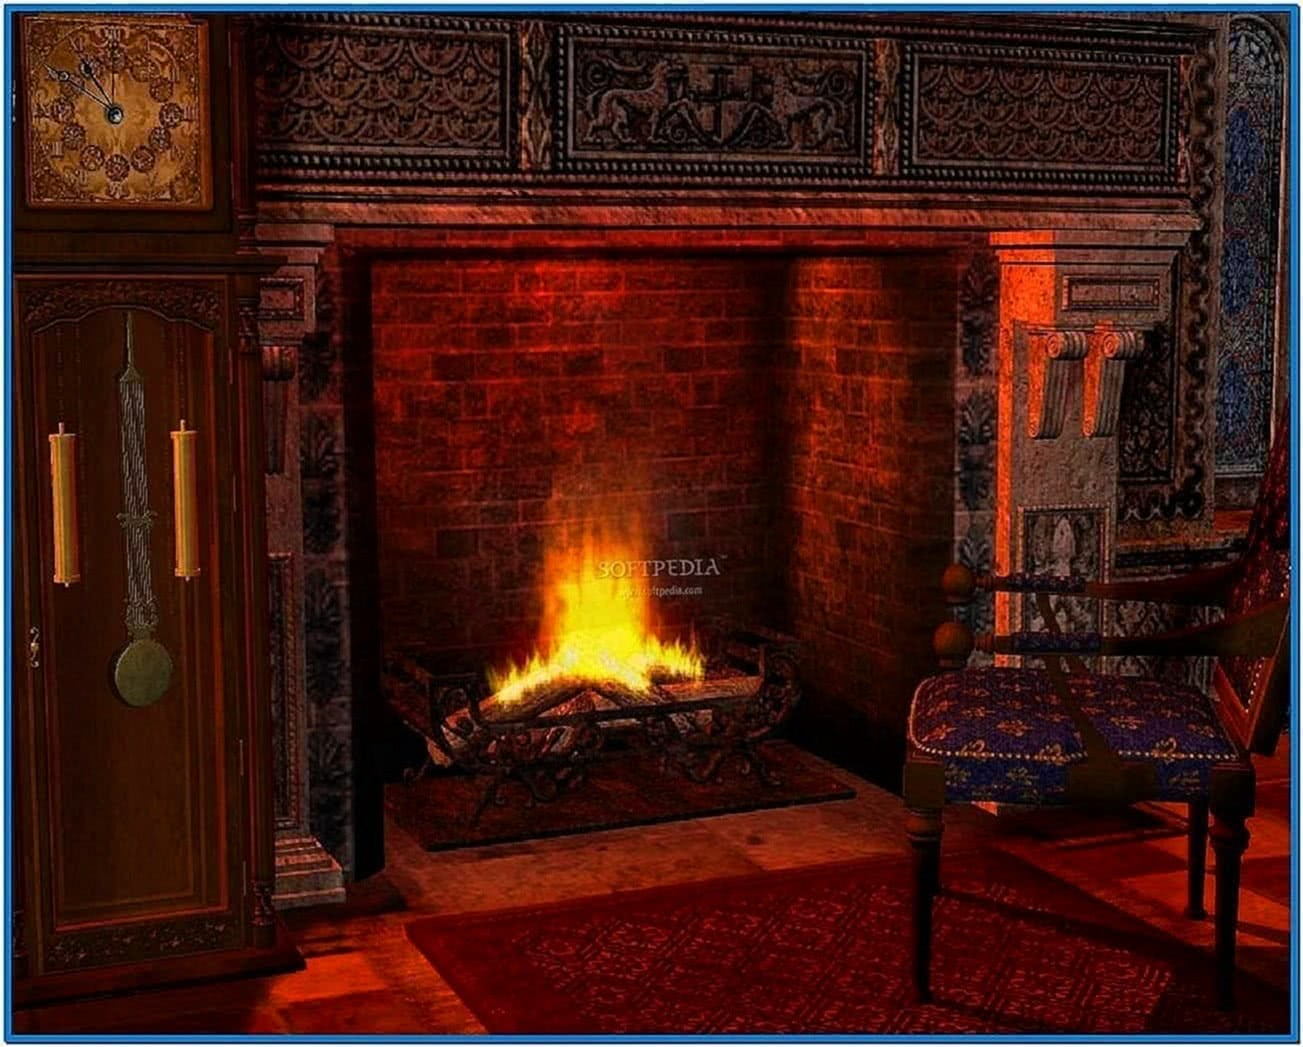 Fireplace Screensaver Animated